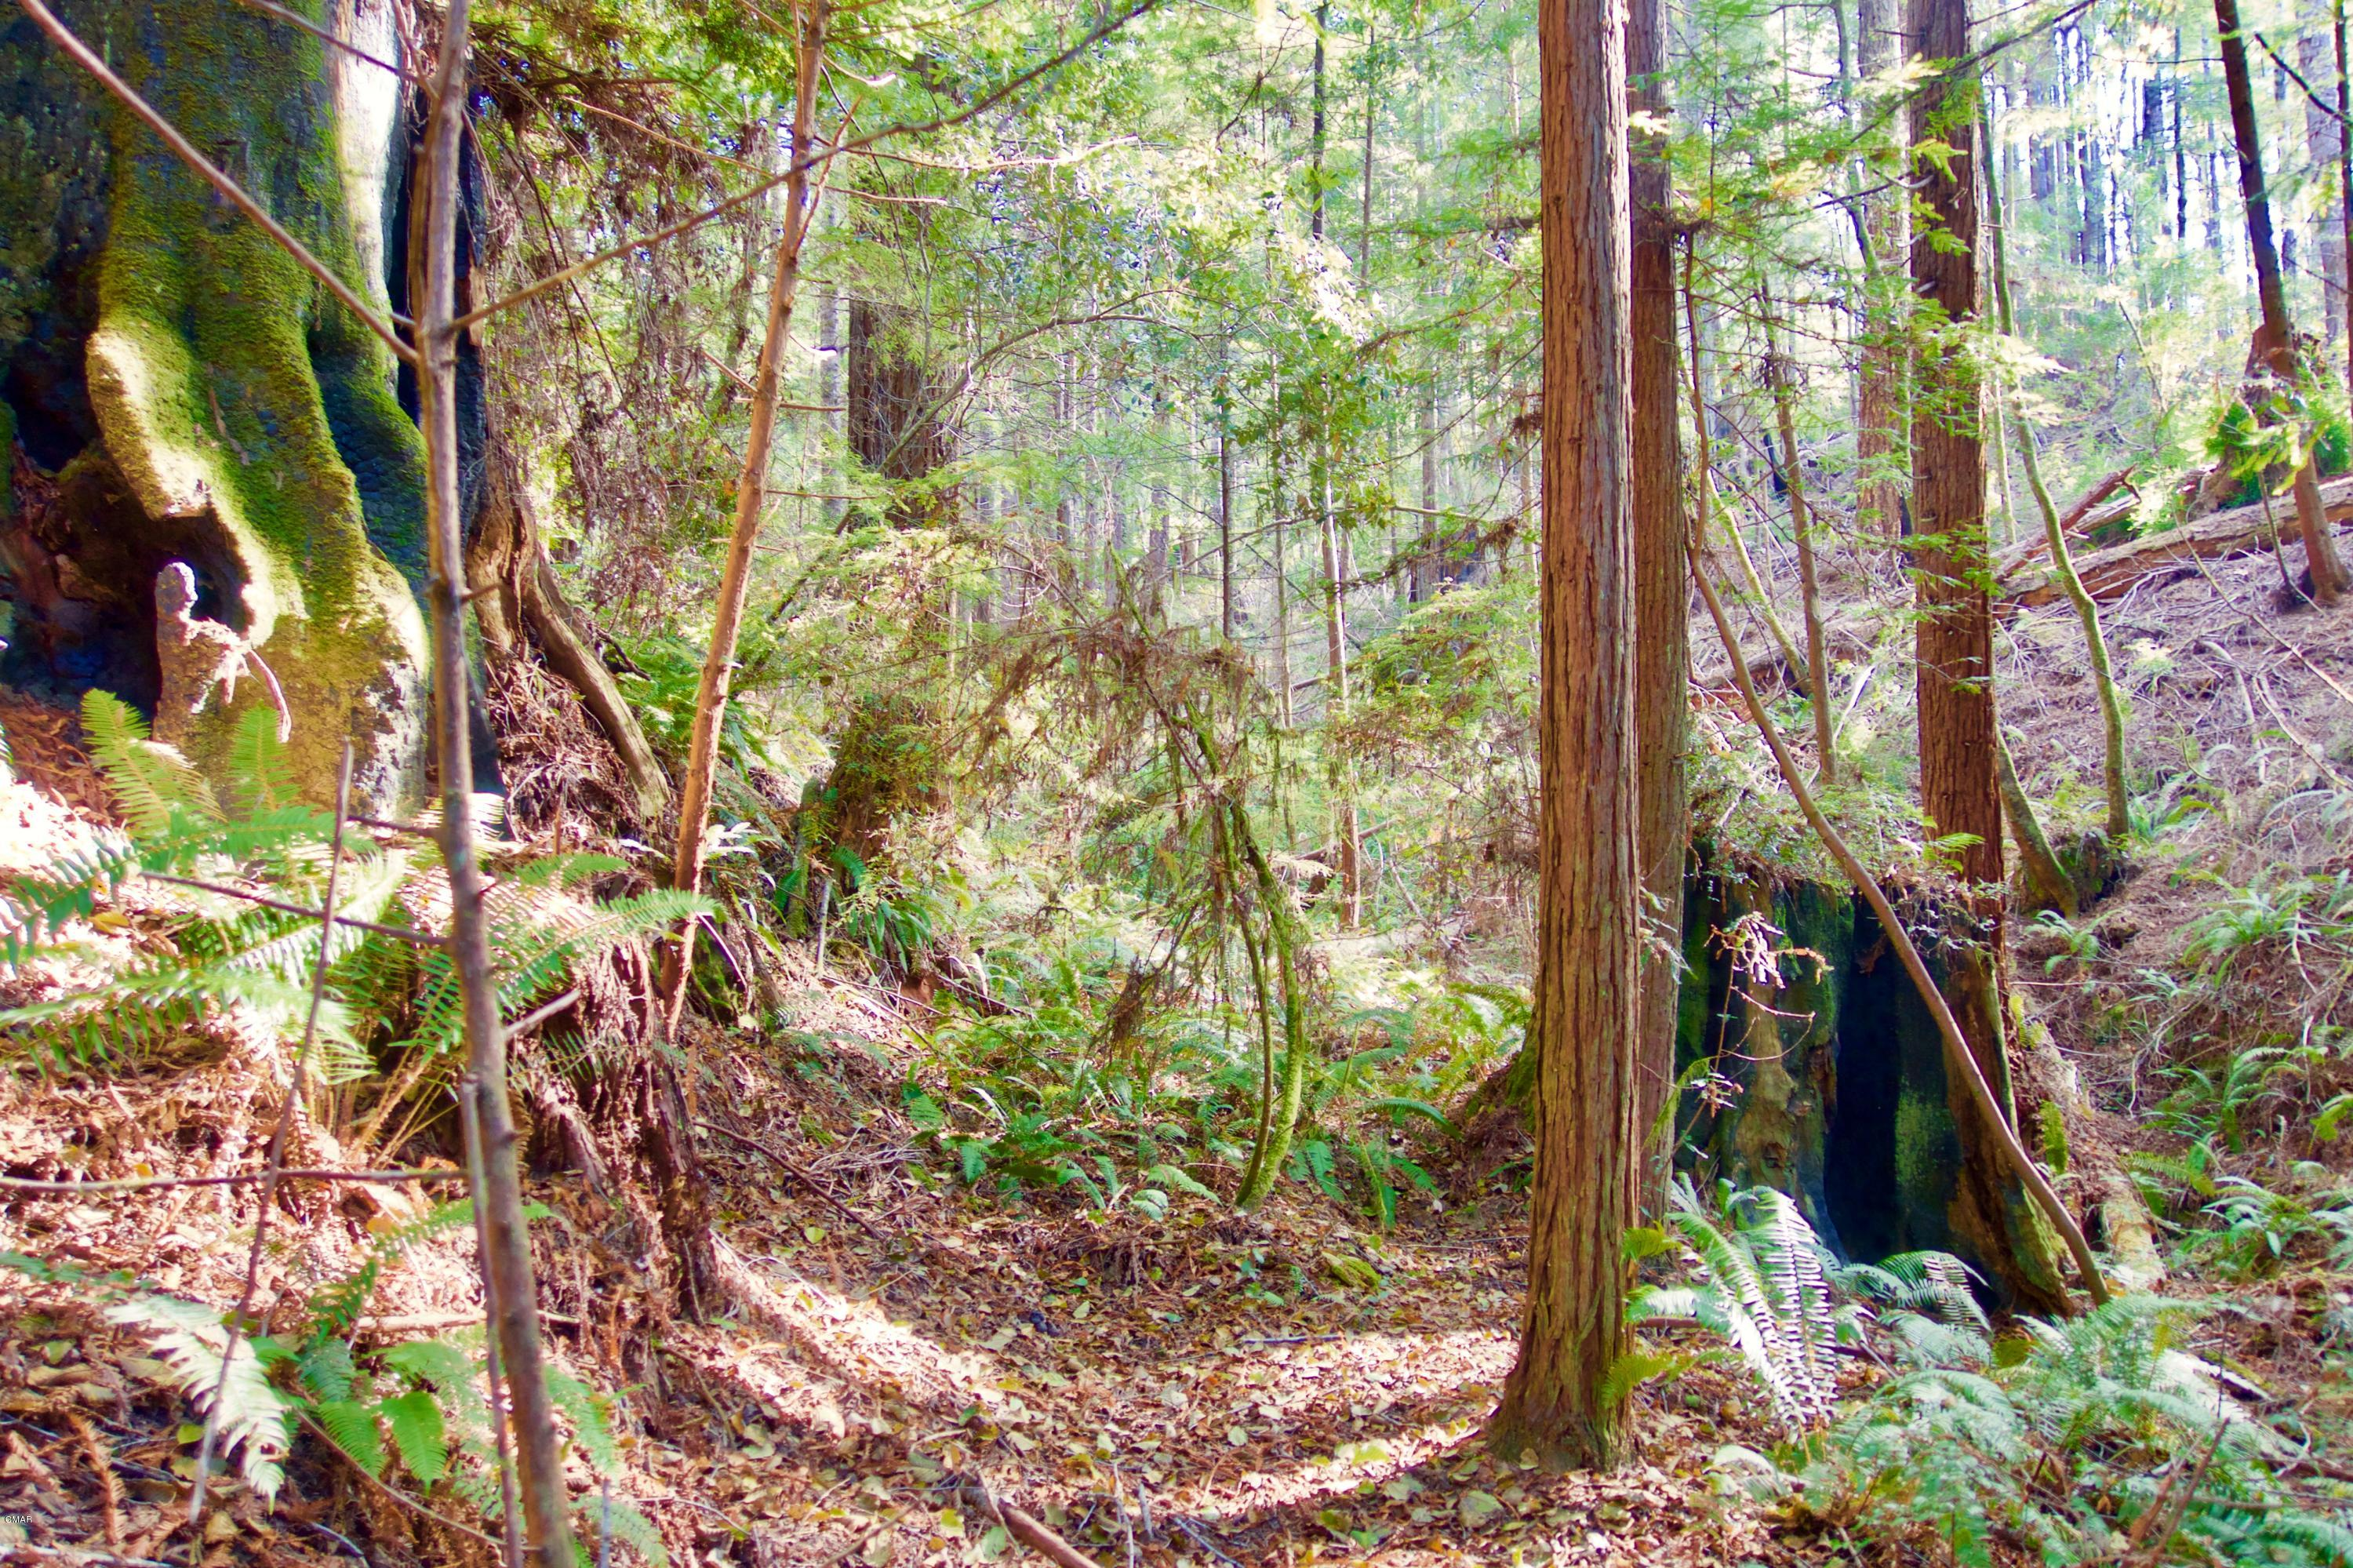 10 acre forest land parcel located in the sunbelt area about 4 miles inland from the Fort Bragg coast. Mostly wooded with redwoods, doug fir, madrones and more. A seasonal creek and fern groves are also present. Turn off from Highway 20 and follow the lane north to the property. There is a combination of gentle, steep and level areas and some marketable timber may be present.